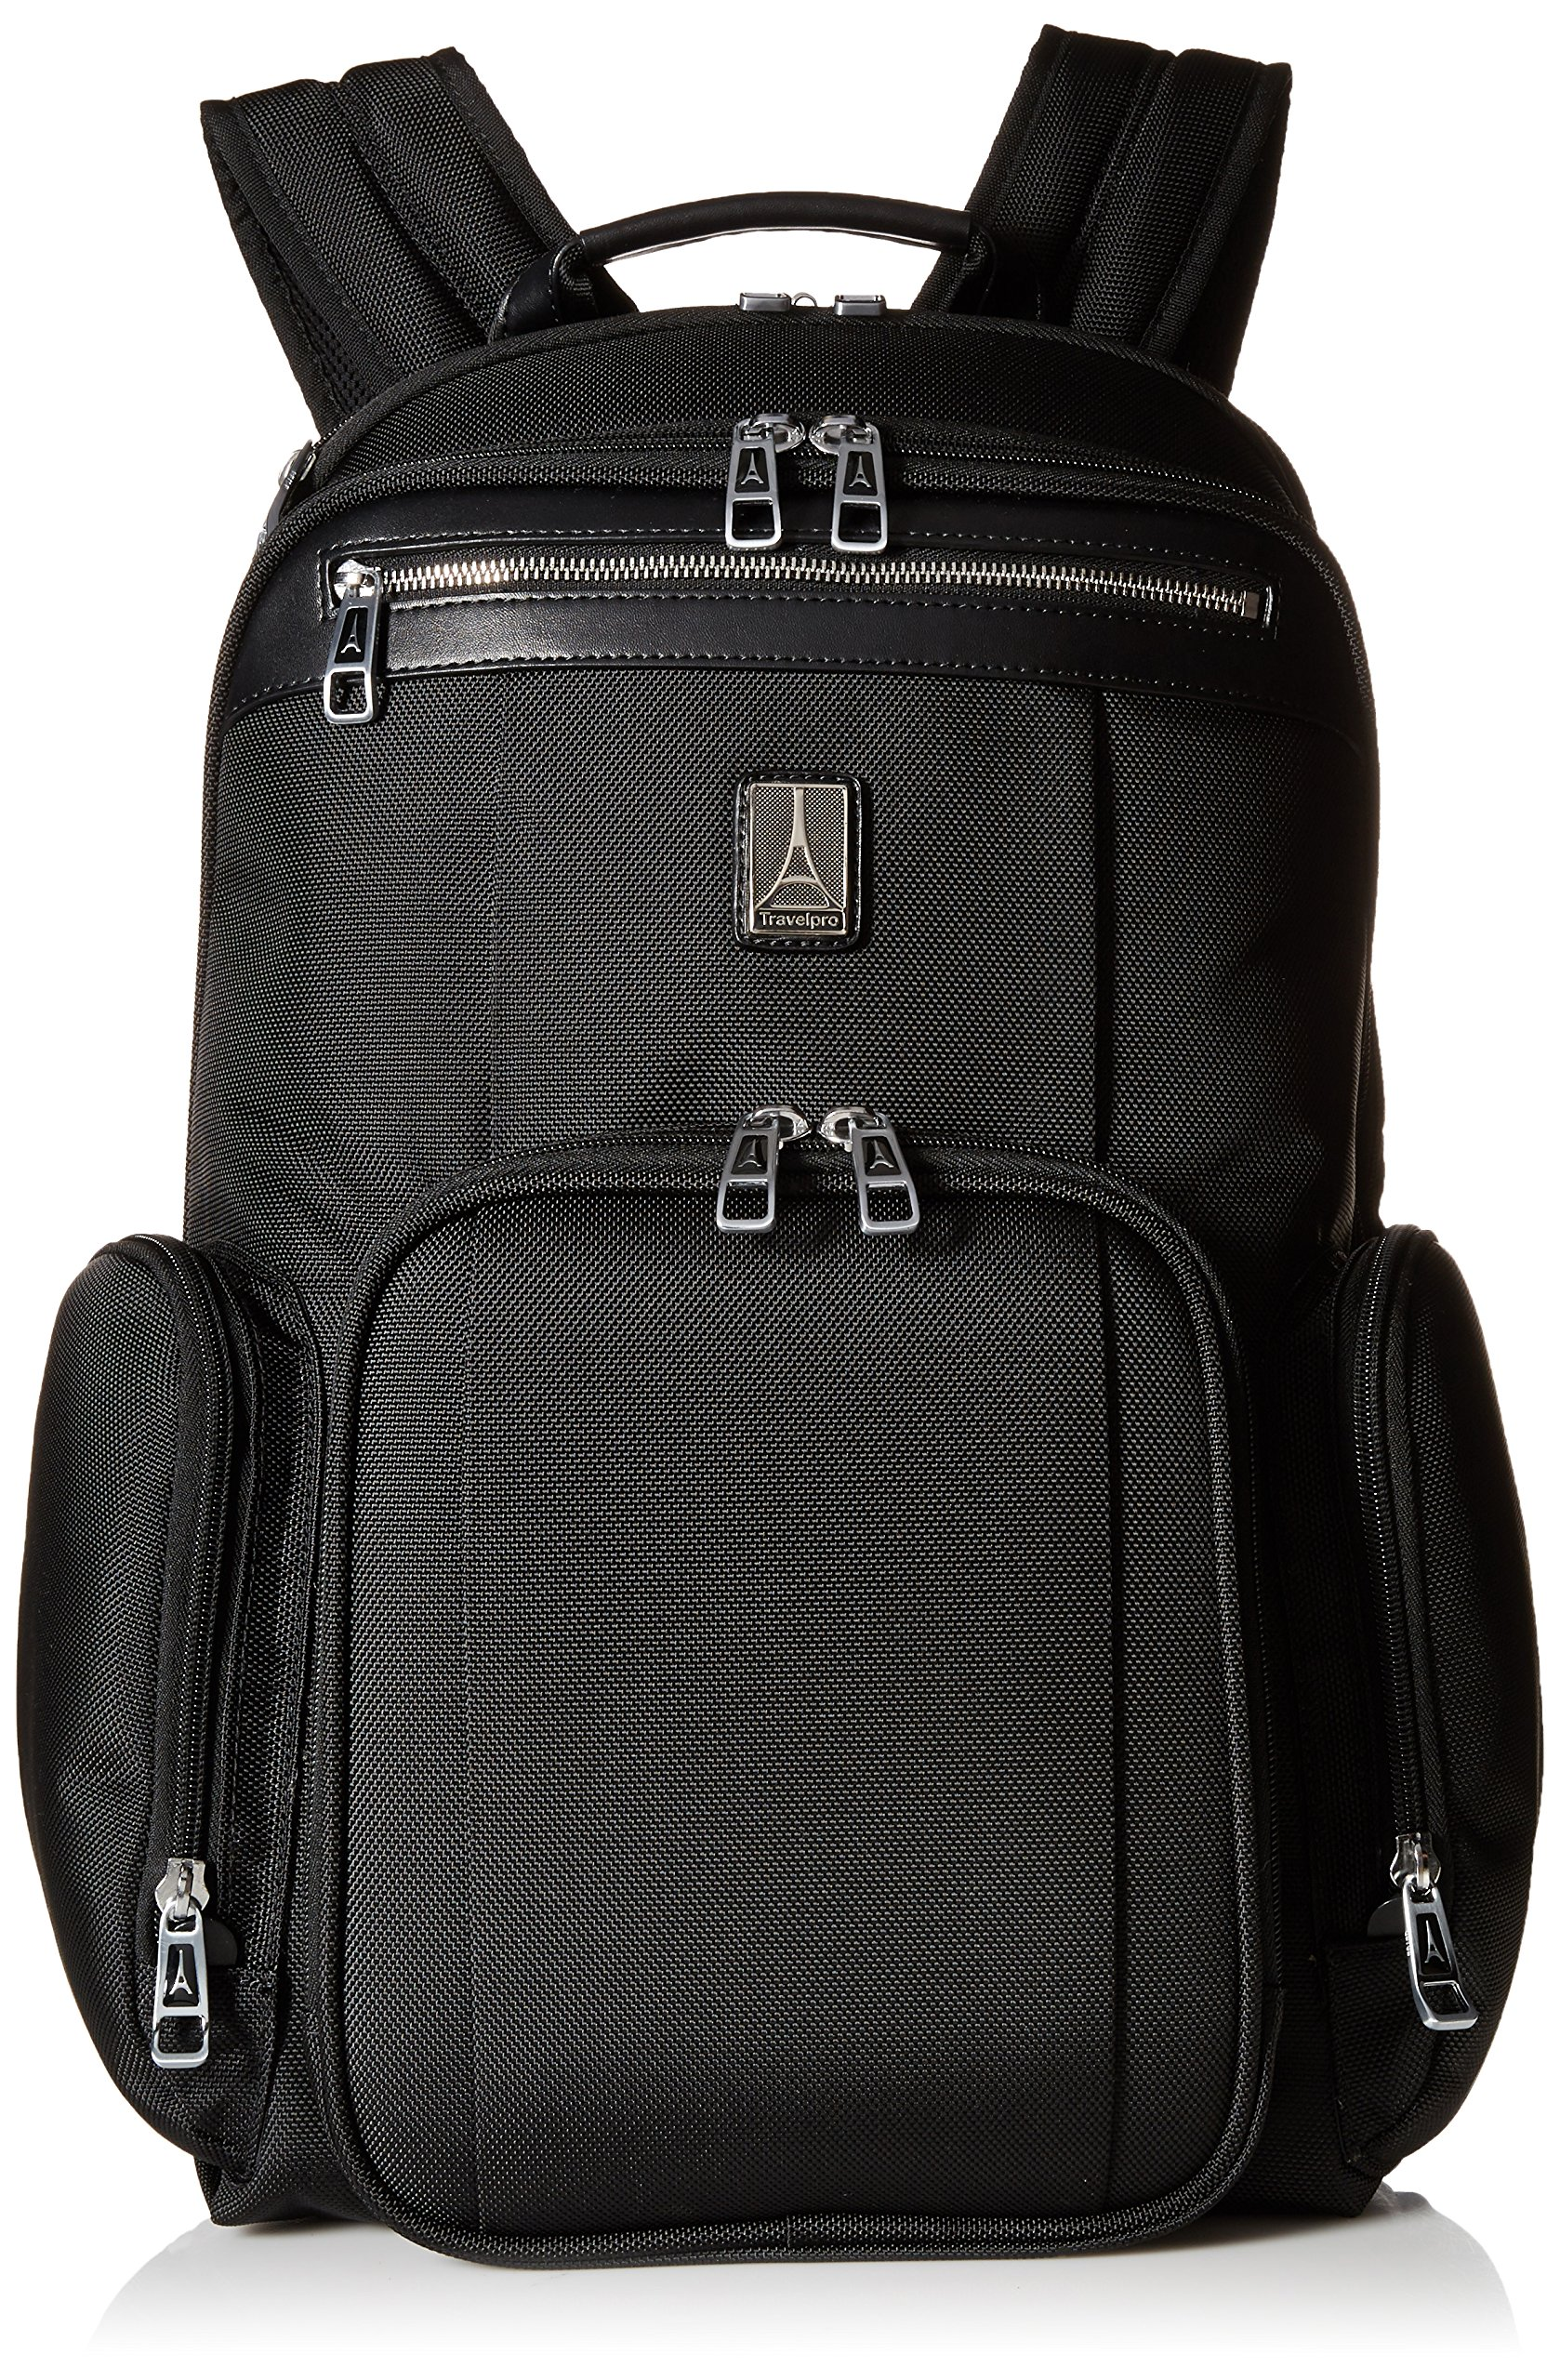 Travelpro Platinum Magna 2 Check Point Friendly Business Backpack, Black, One Size